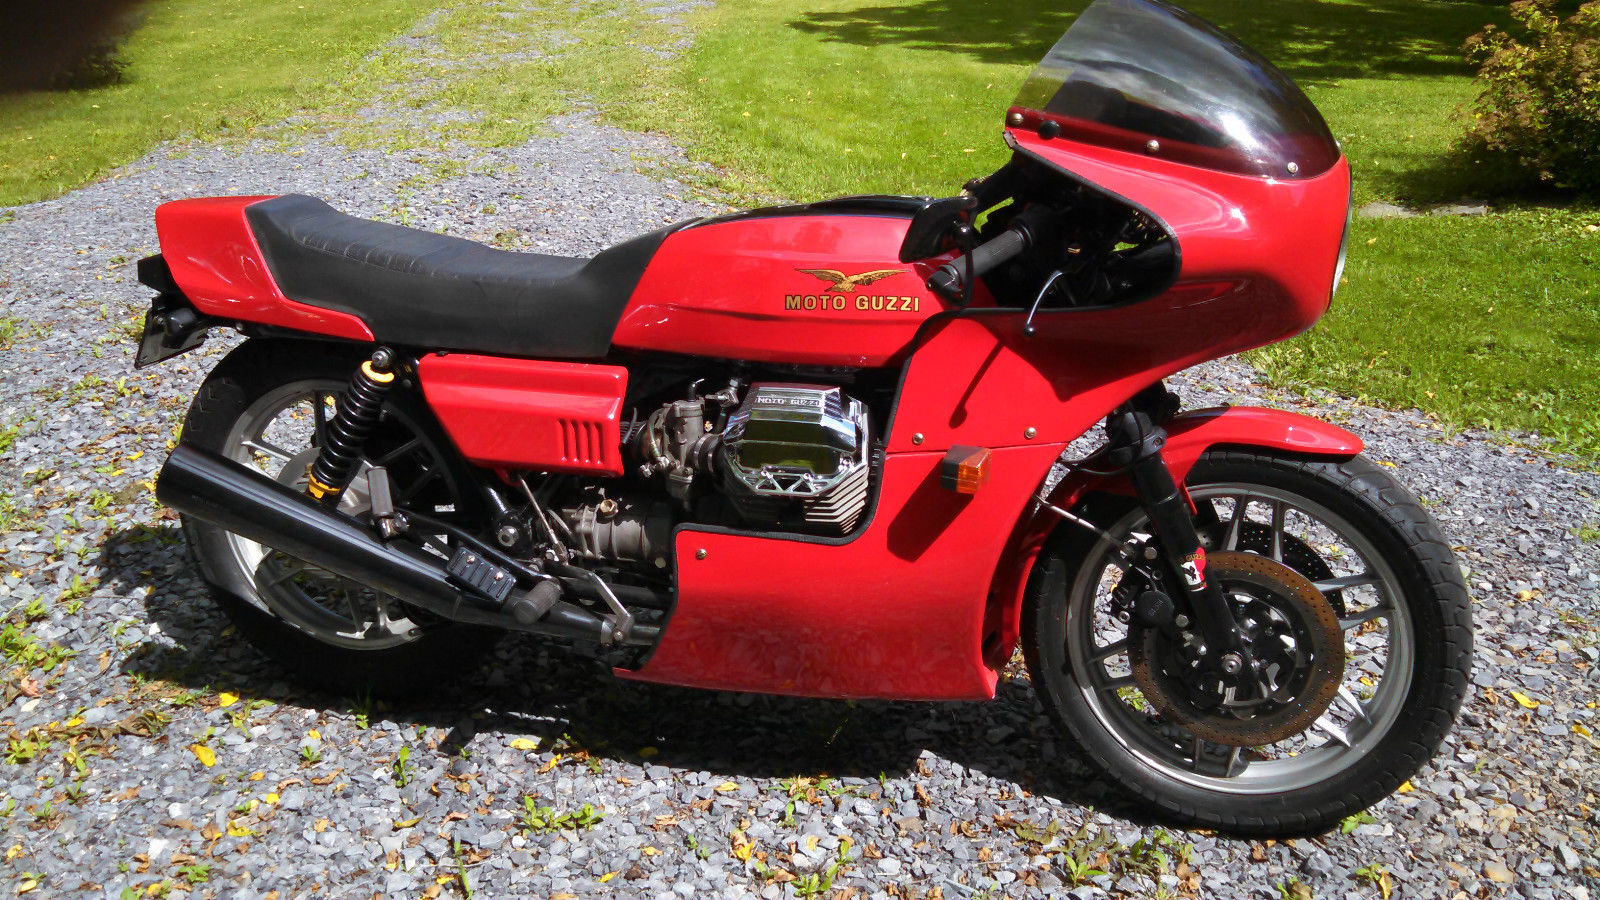 moto guzzi mille gt 1000 pics specs and list of seriess. Black Bedroom Furniture Sets. Home Design Ideas